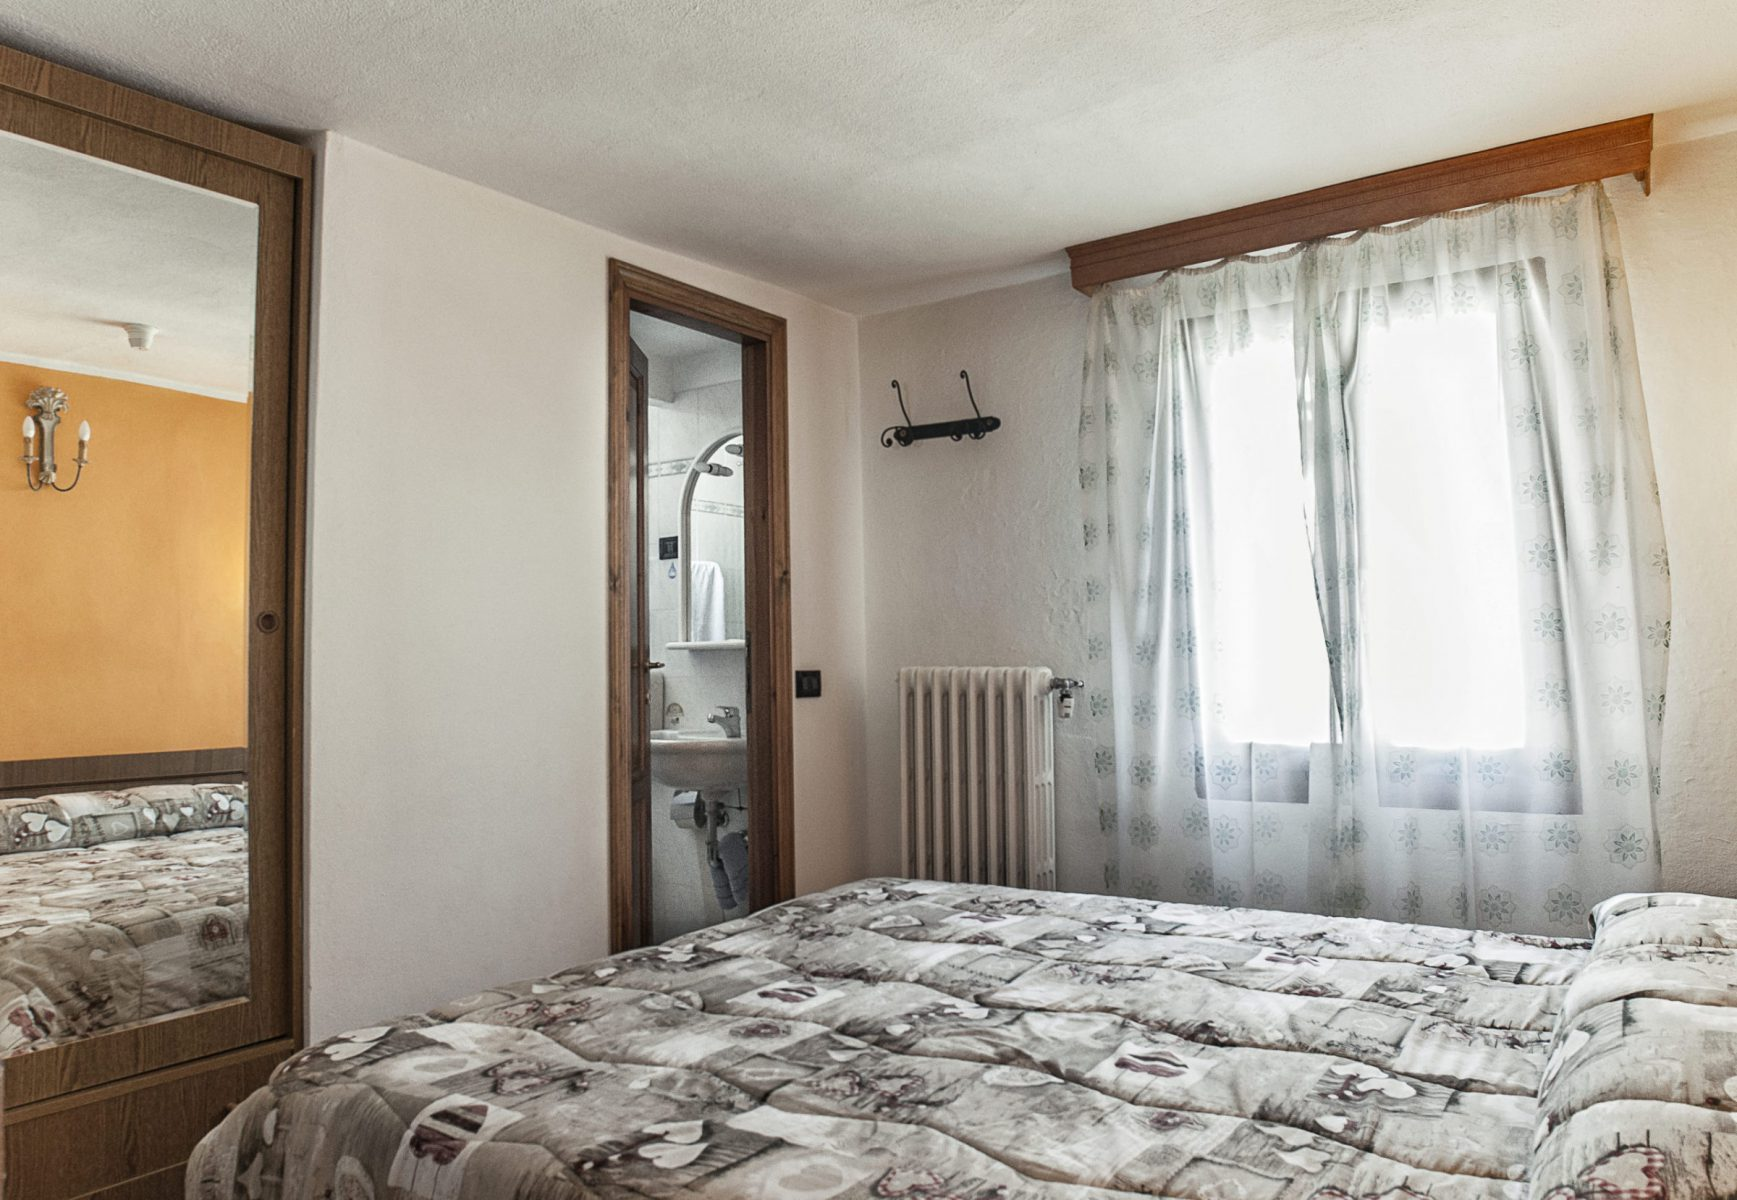 albergoguerri-7-1-scaled-e1585750821170